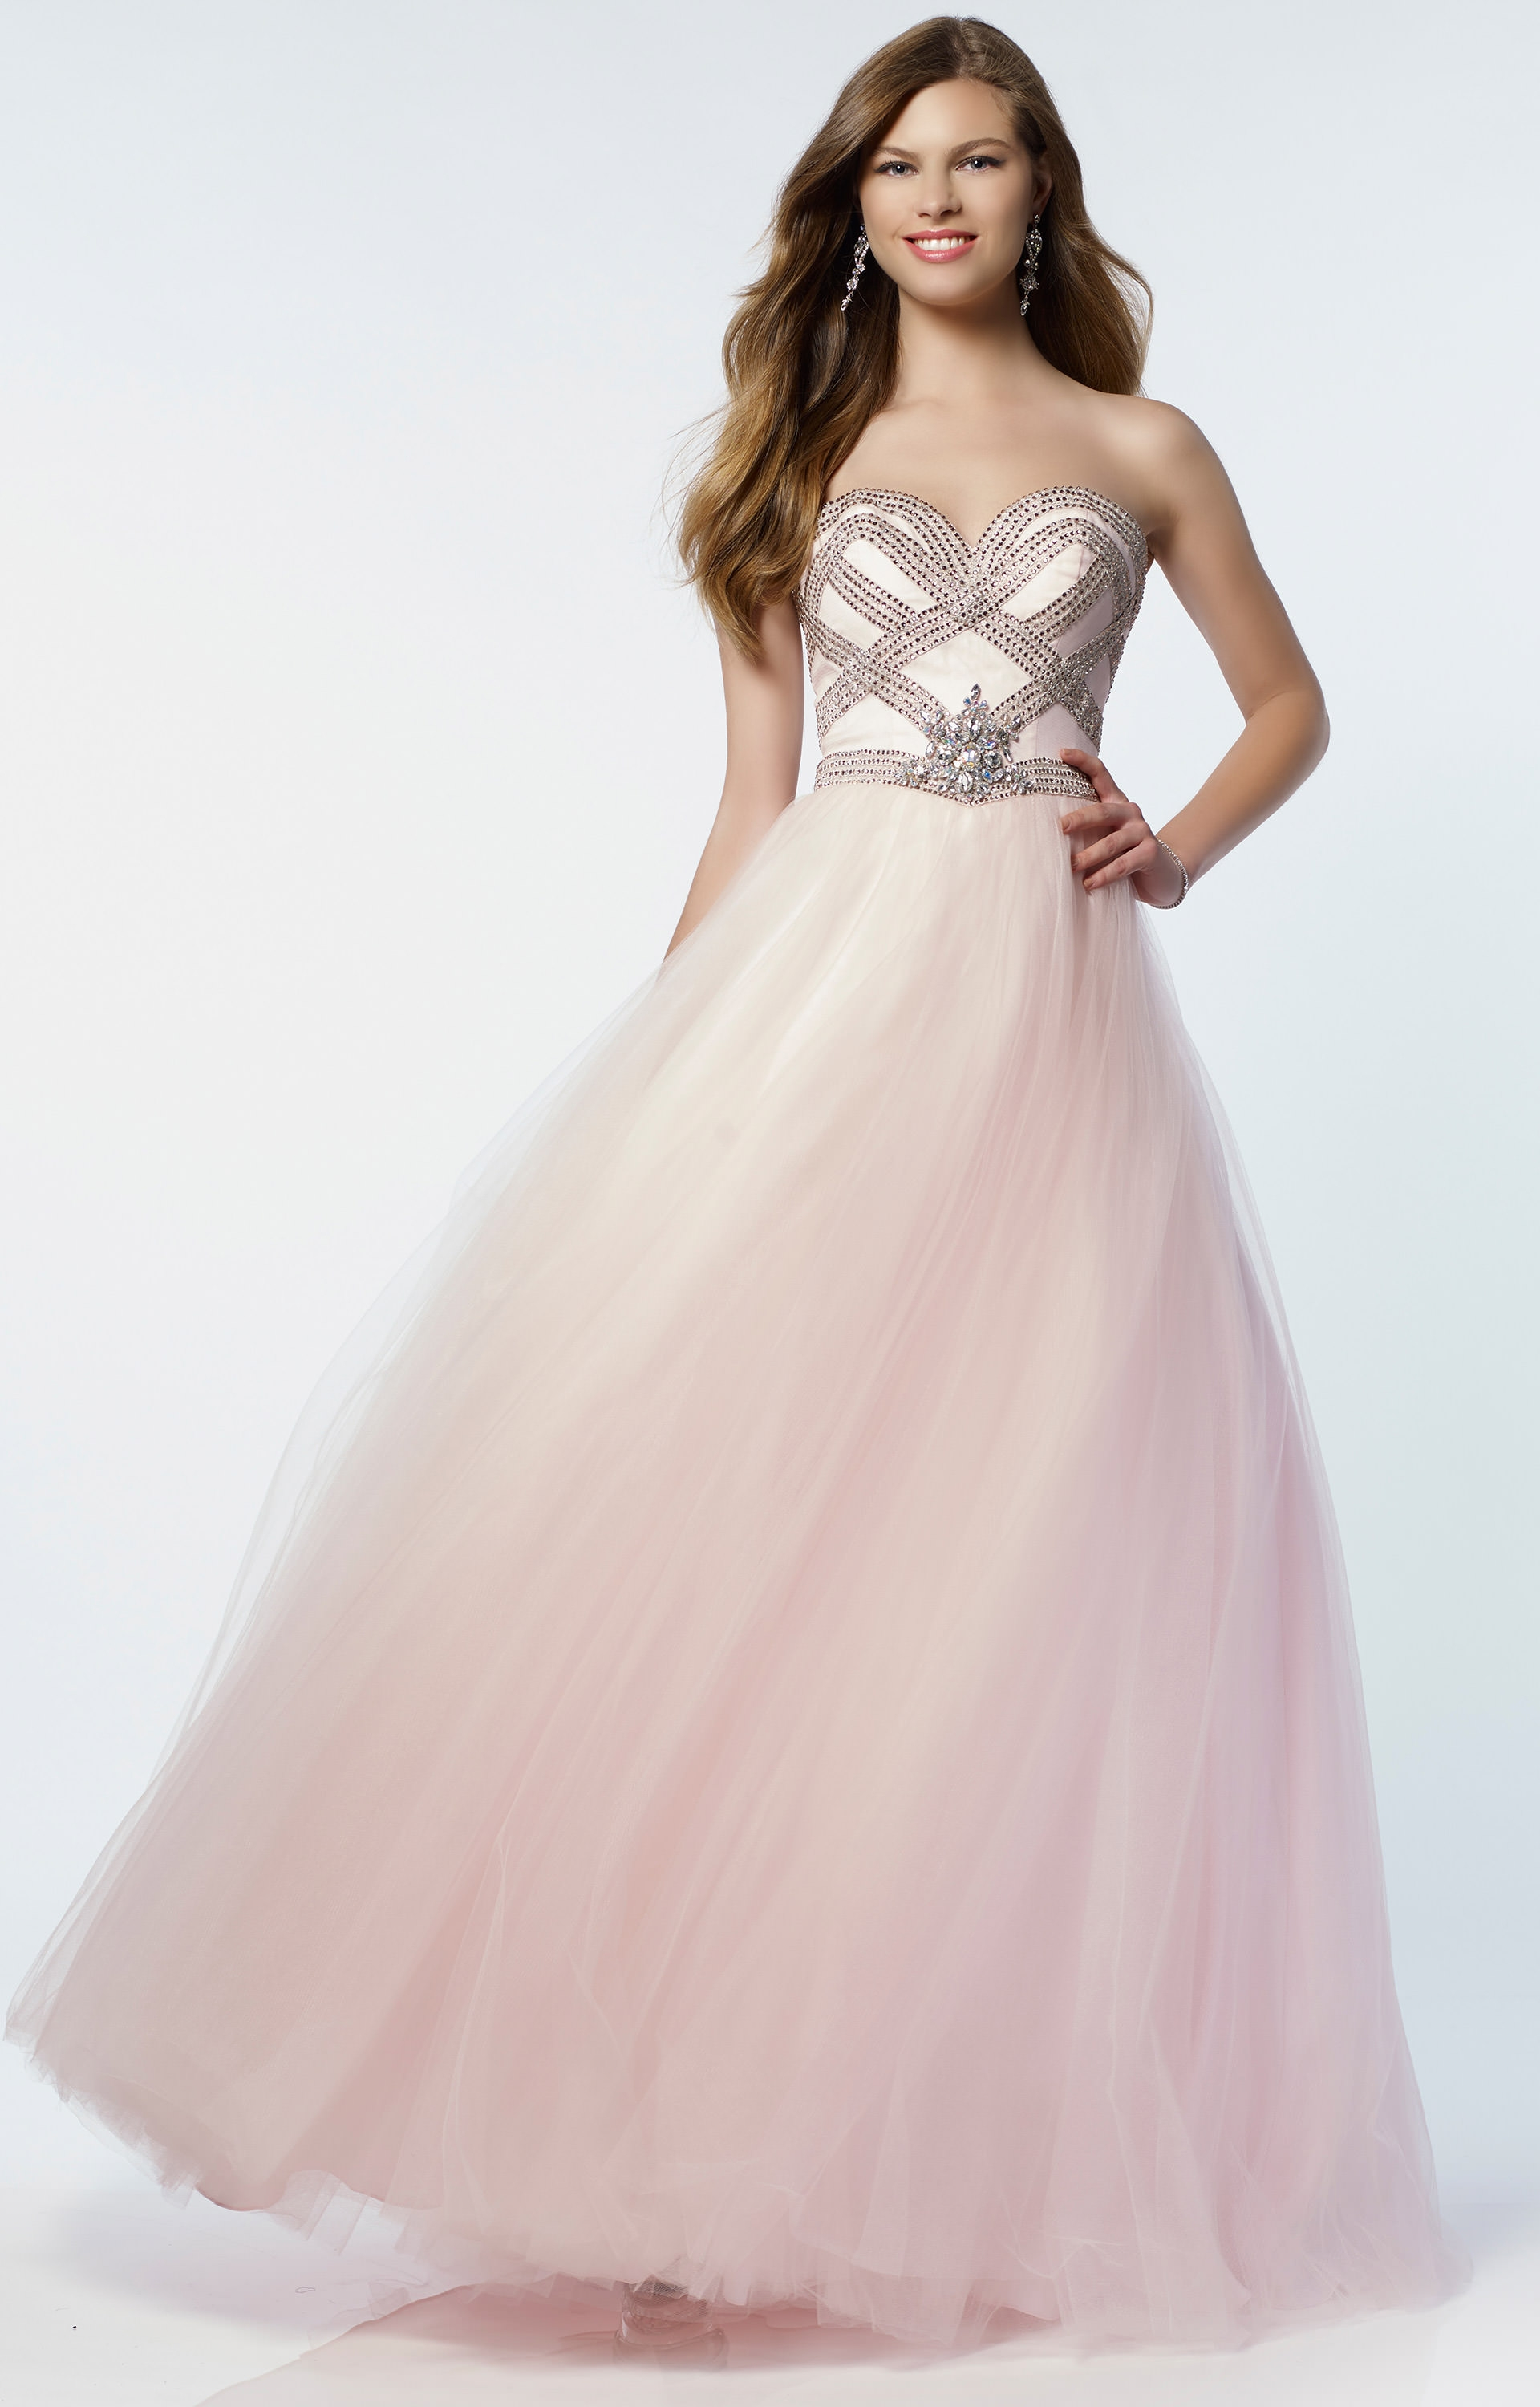 Strapless Cocktail Dress with Sweetheart Beaded Satin Top